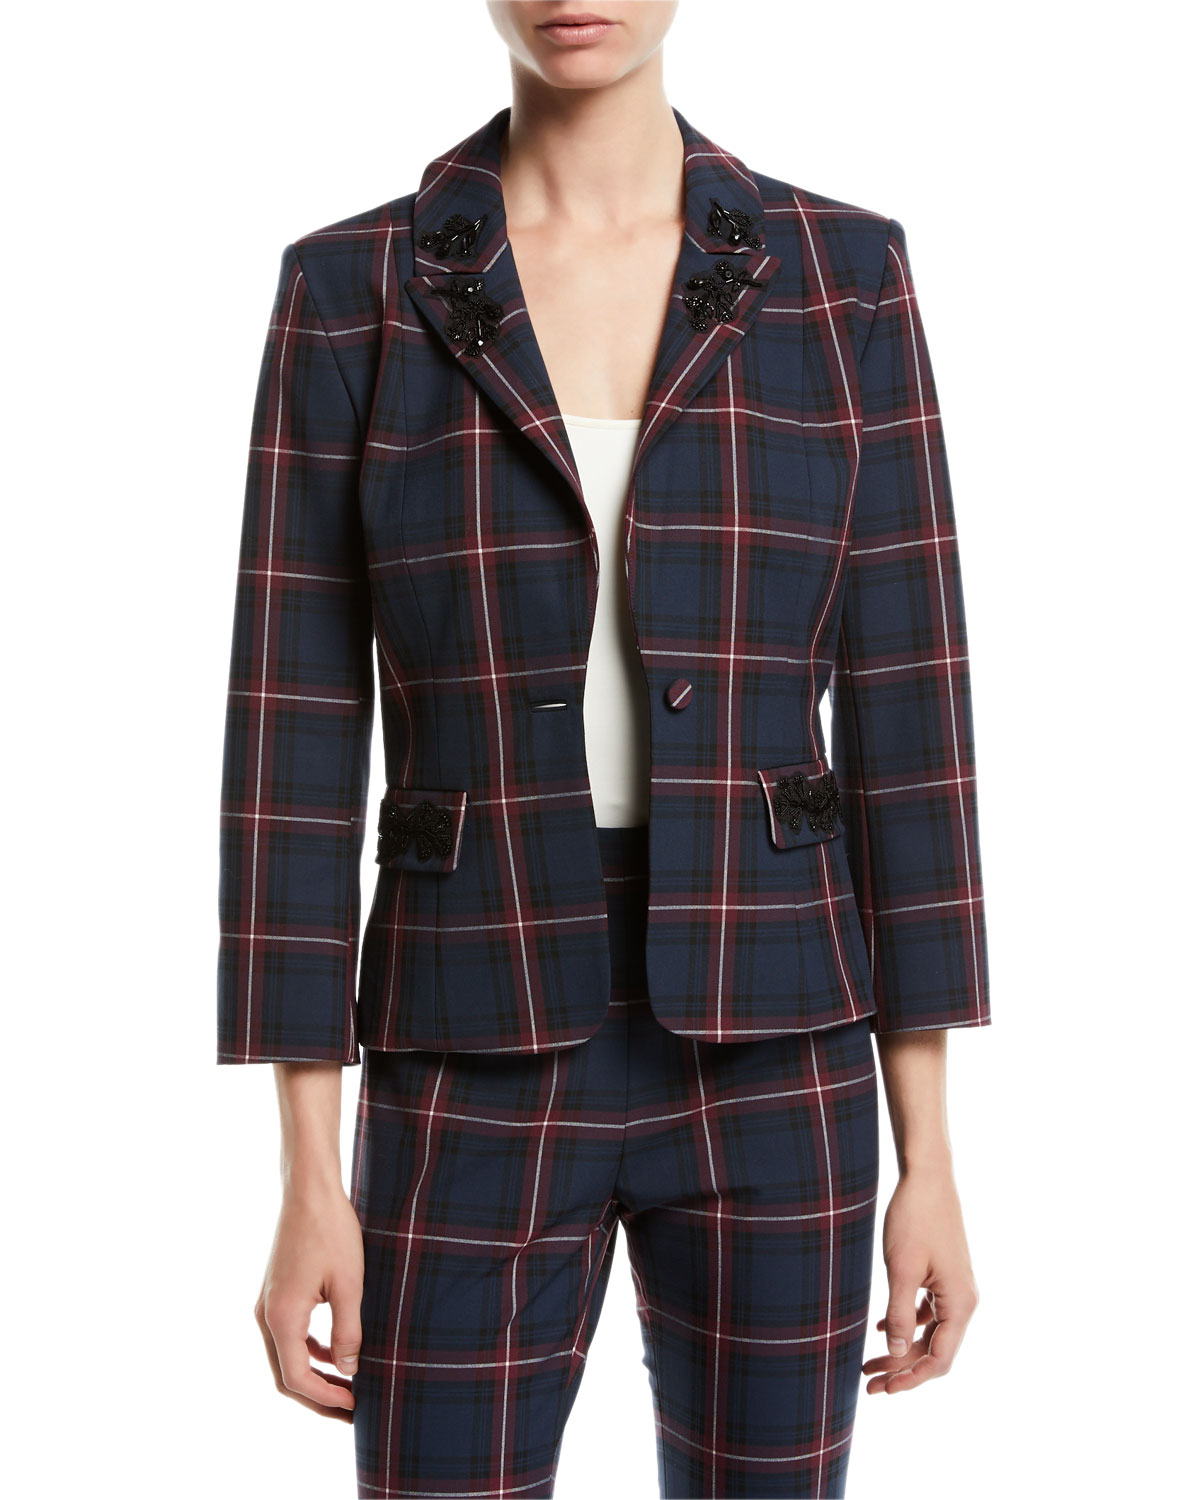 LUCENT EMBELLISHED PLAID BLAZER